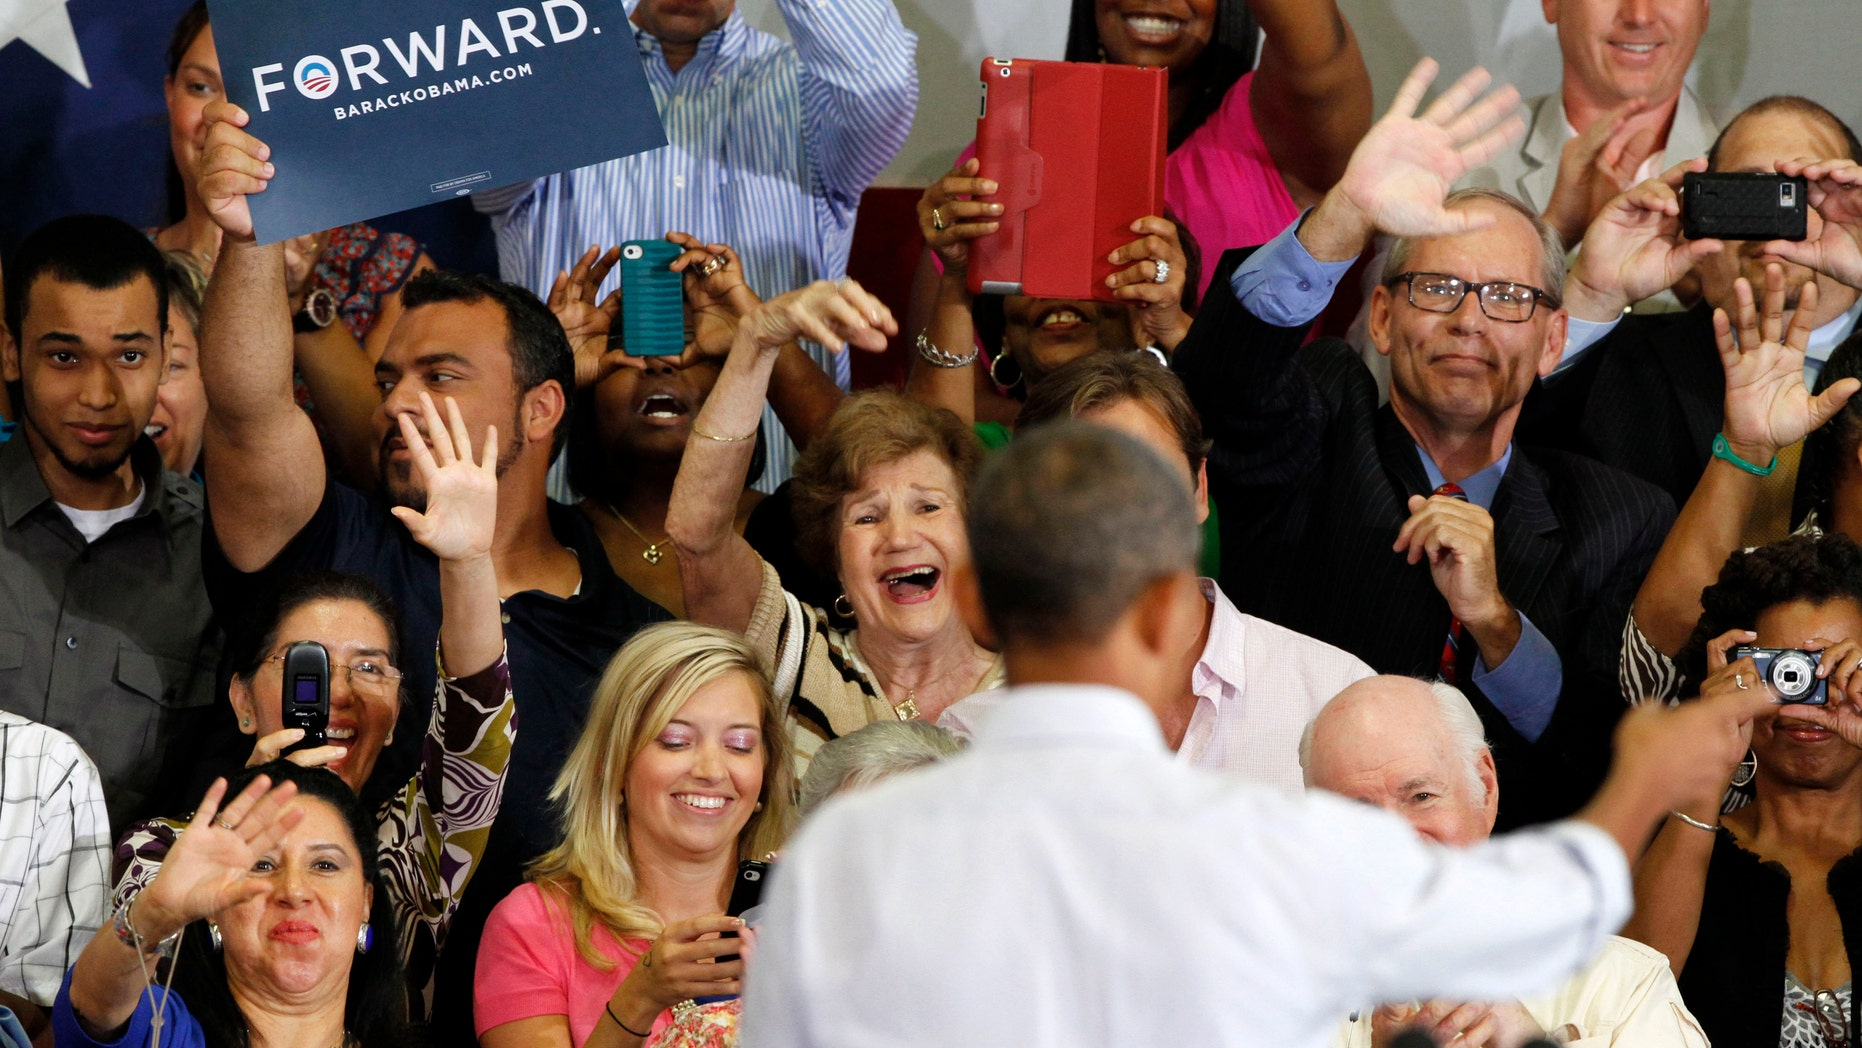 FILE: July 13, 2012: President Barack Obama waves to the supporters after a campaign speech at Green Run High School in Virginia Beach, Va.